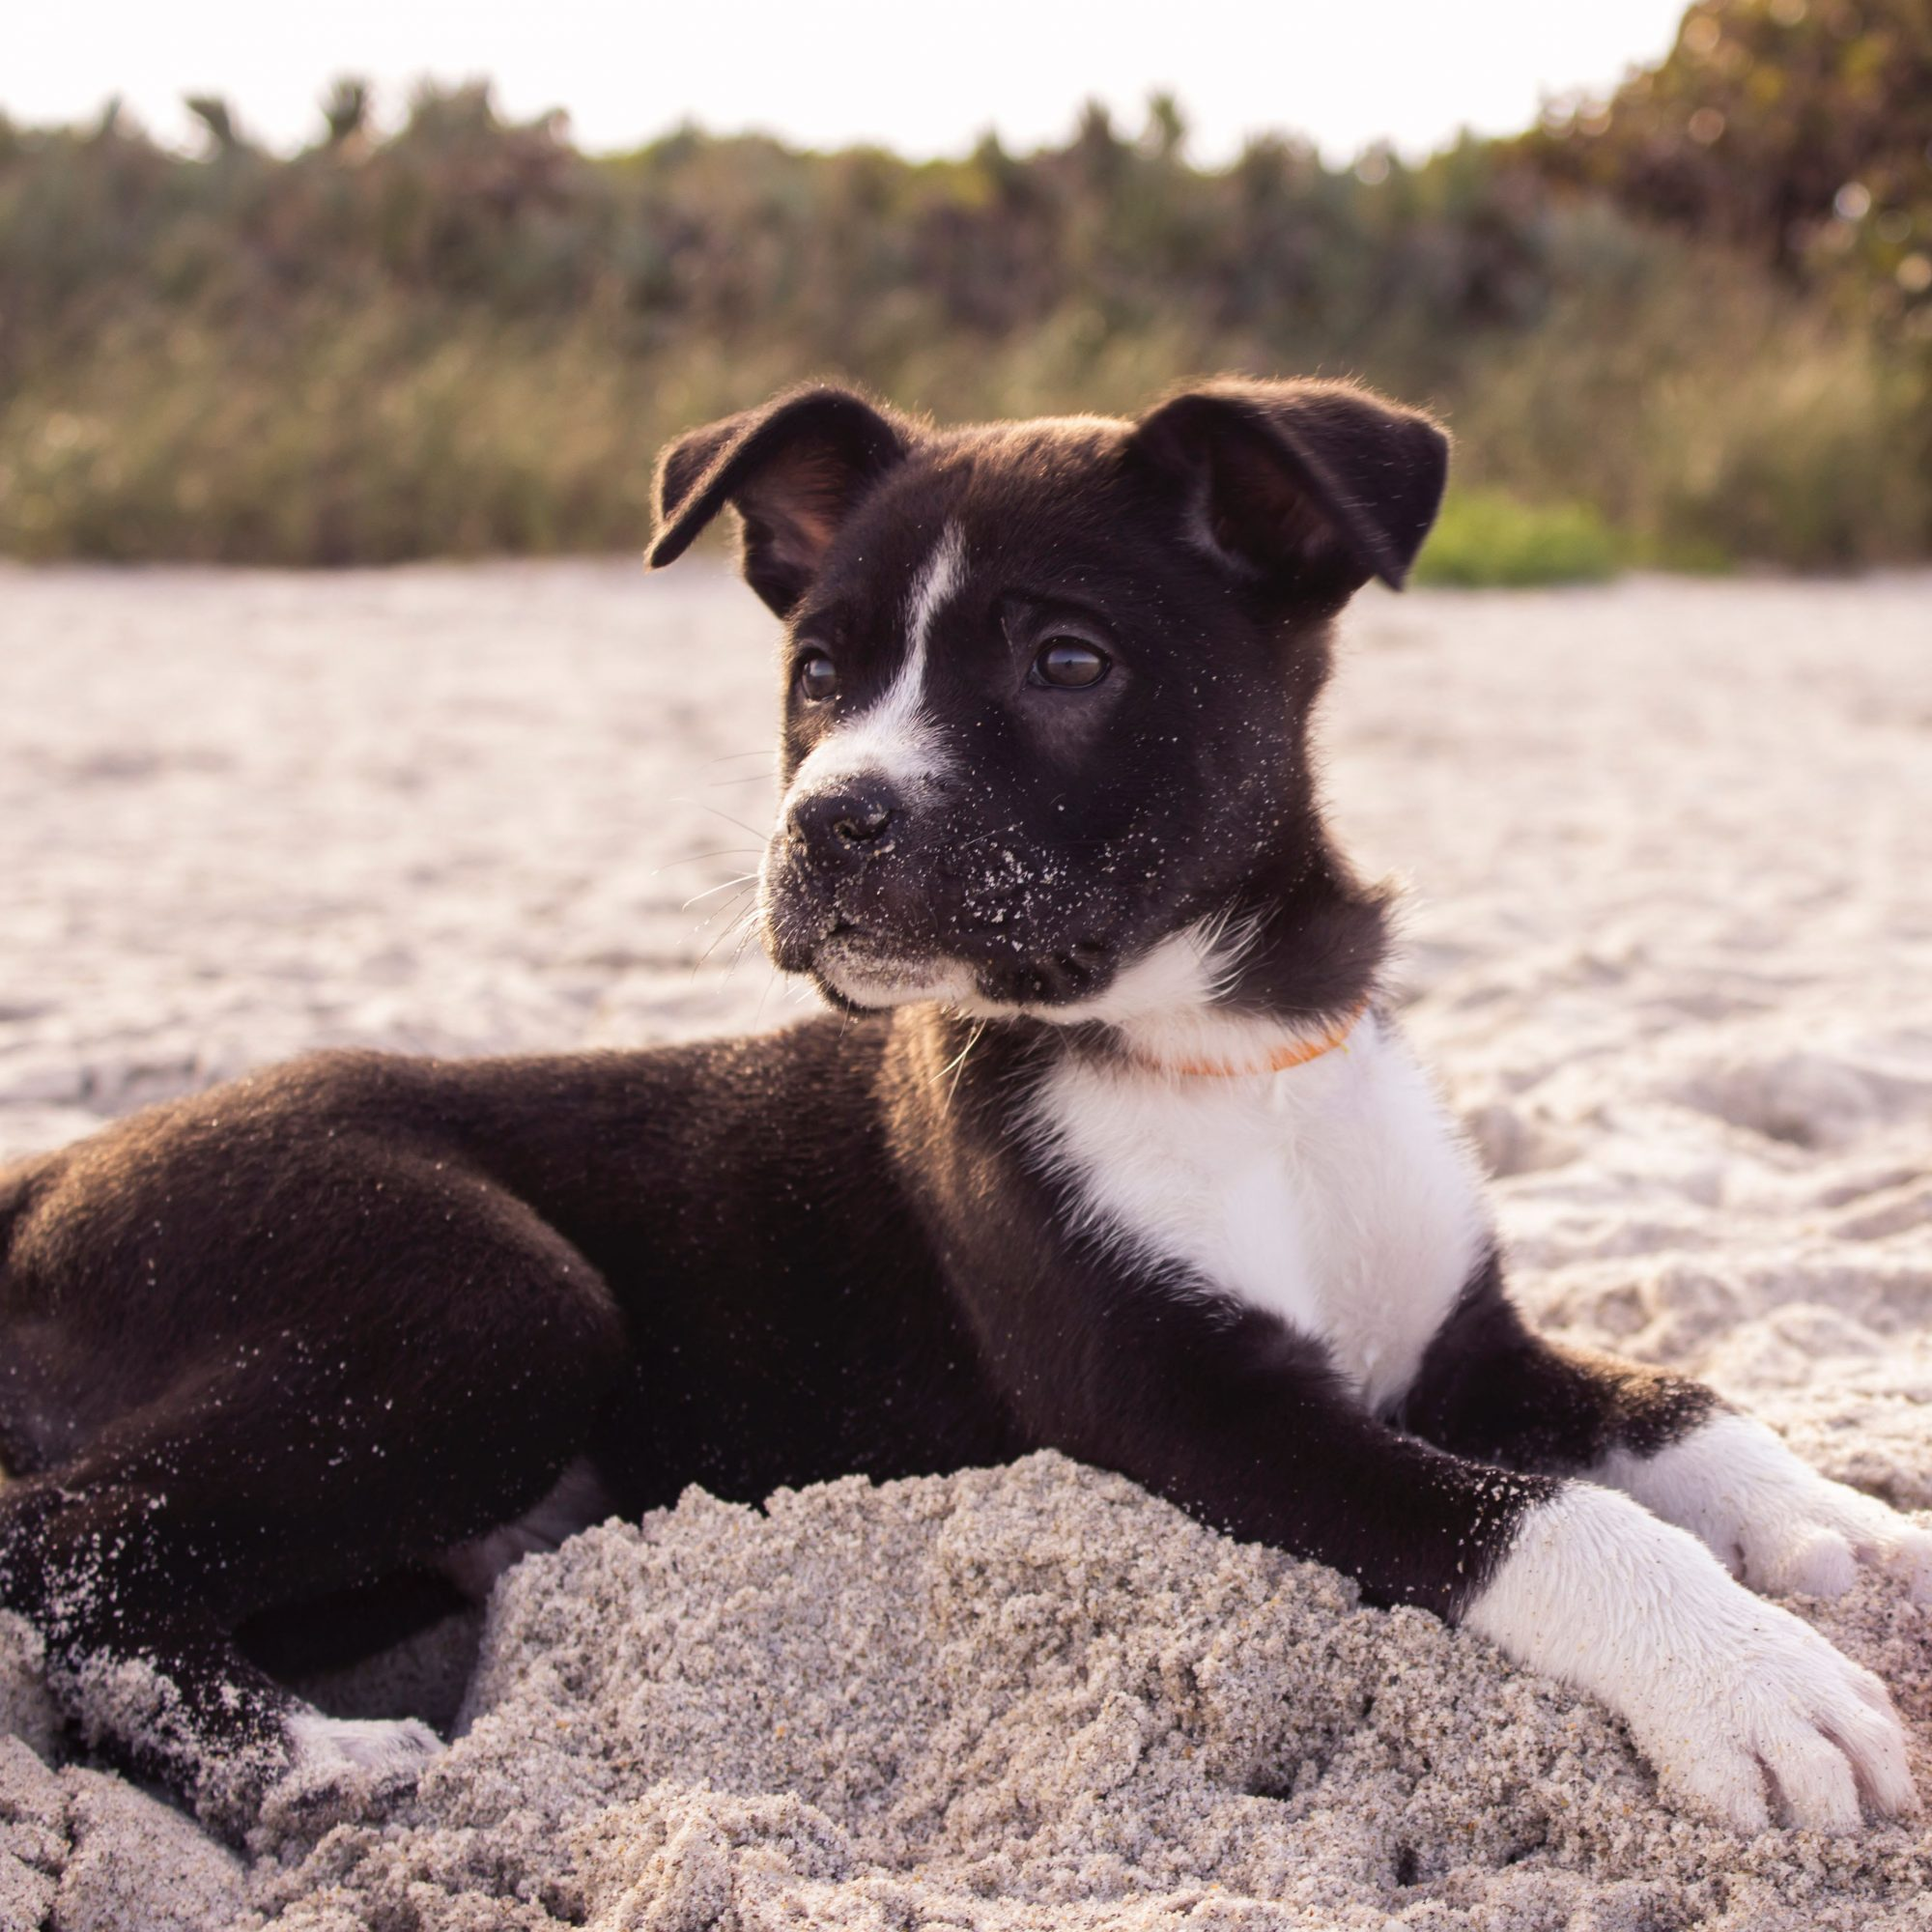 black-and-white puppy on beach